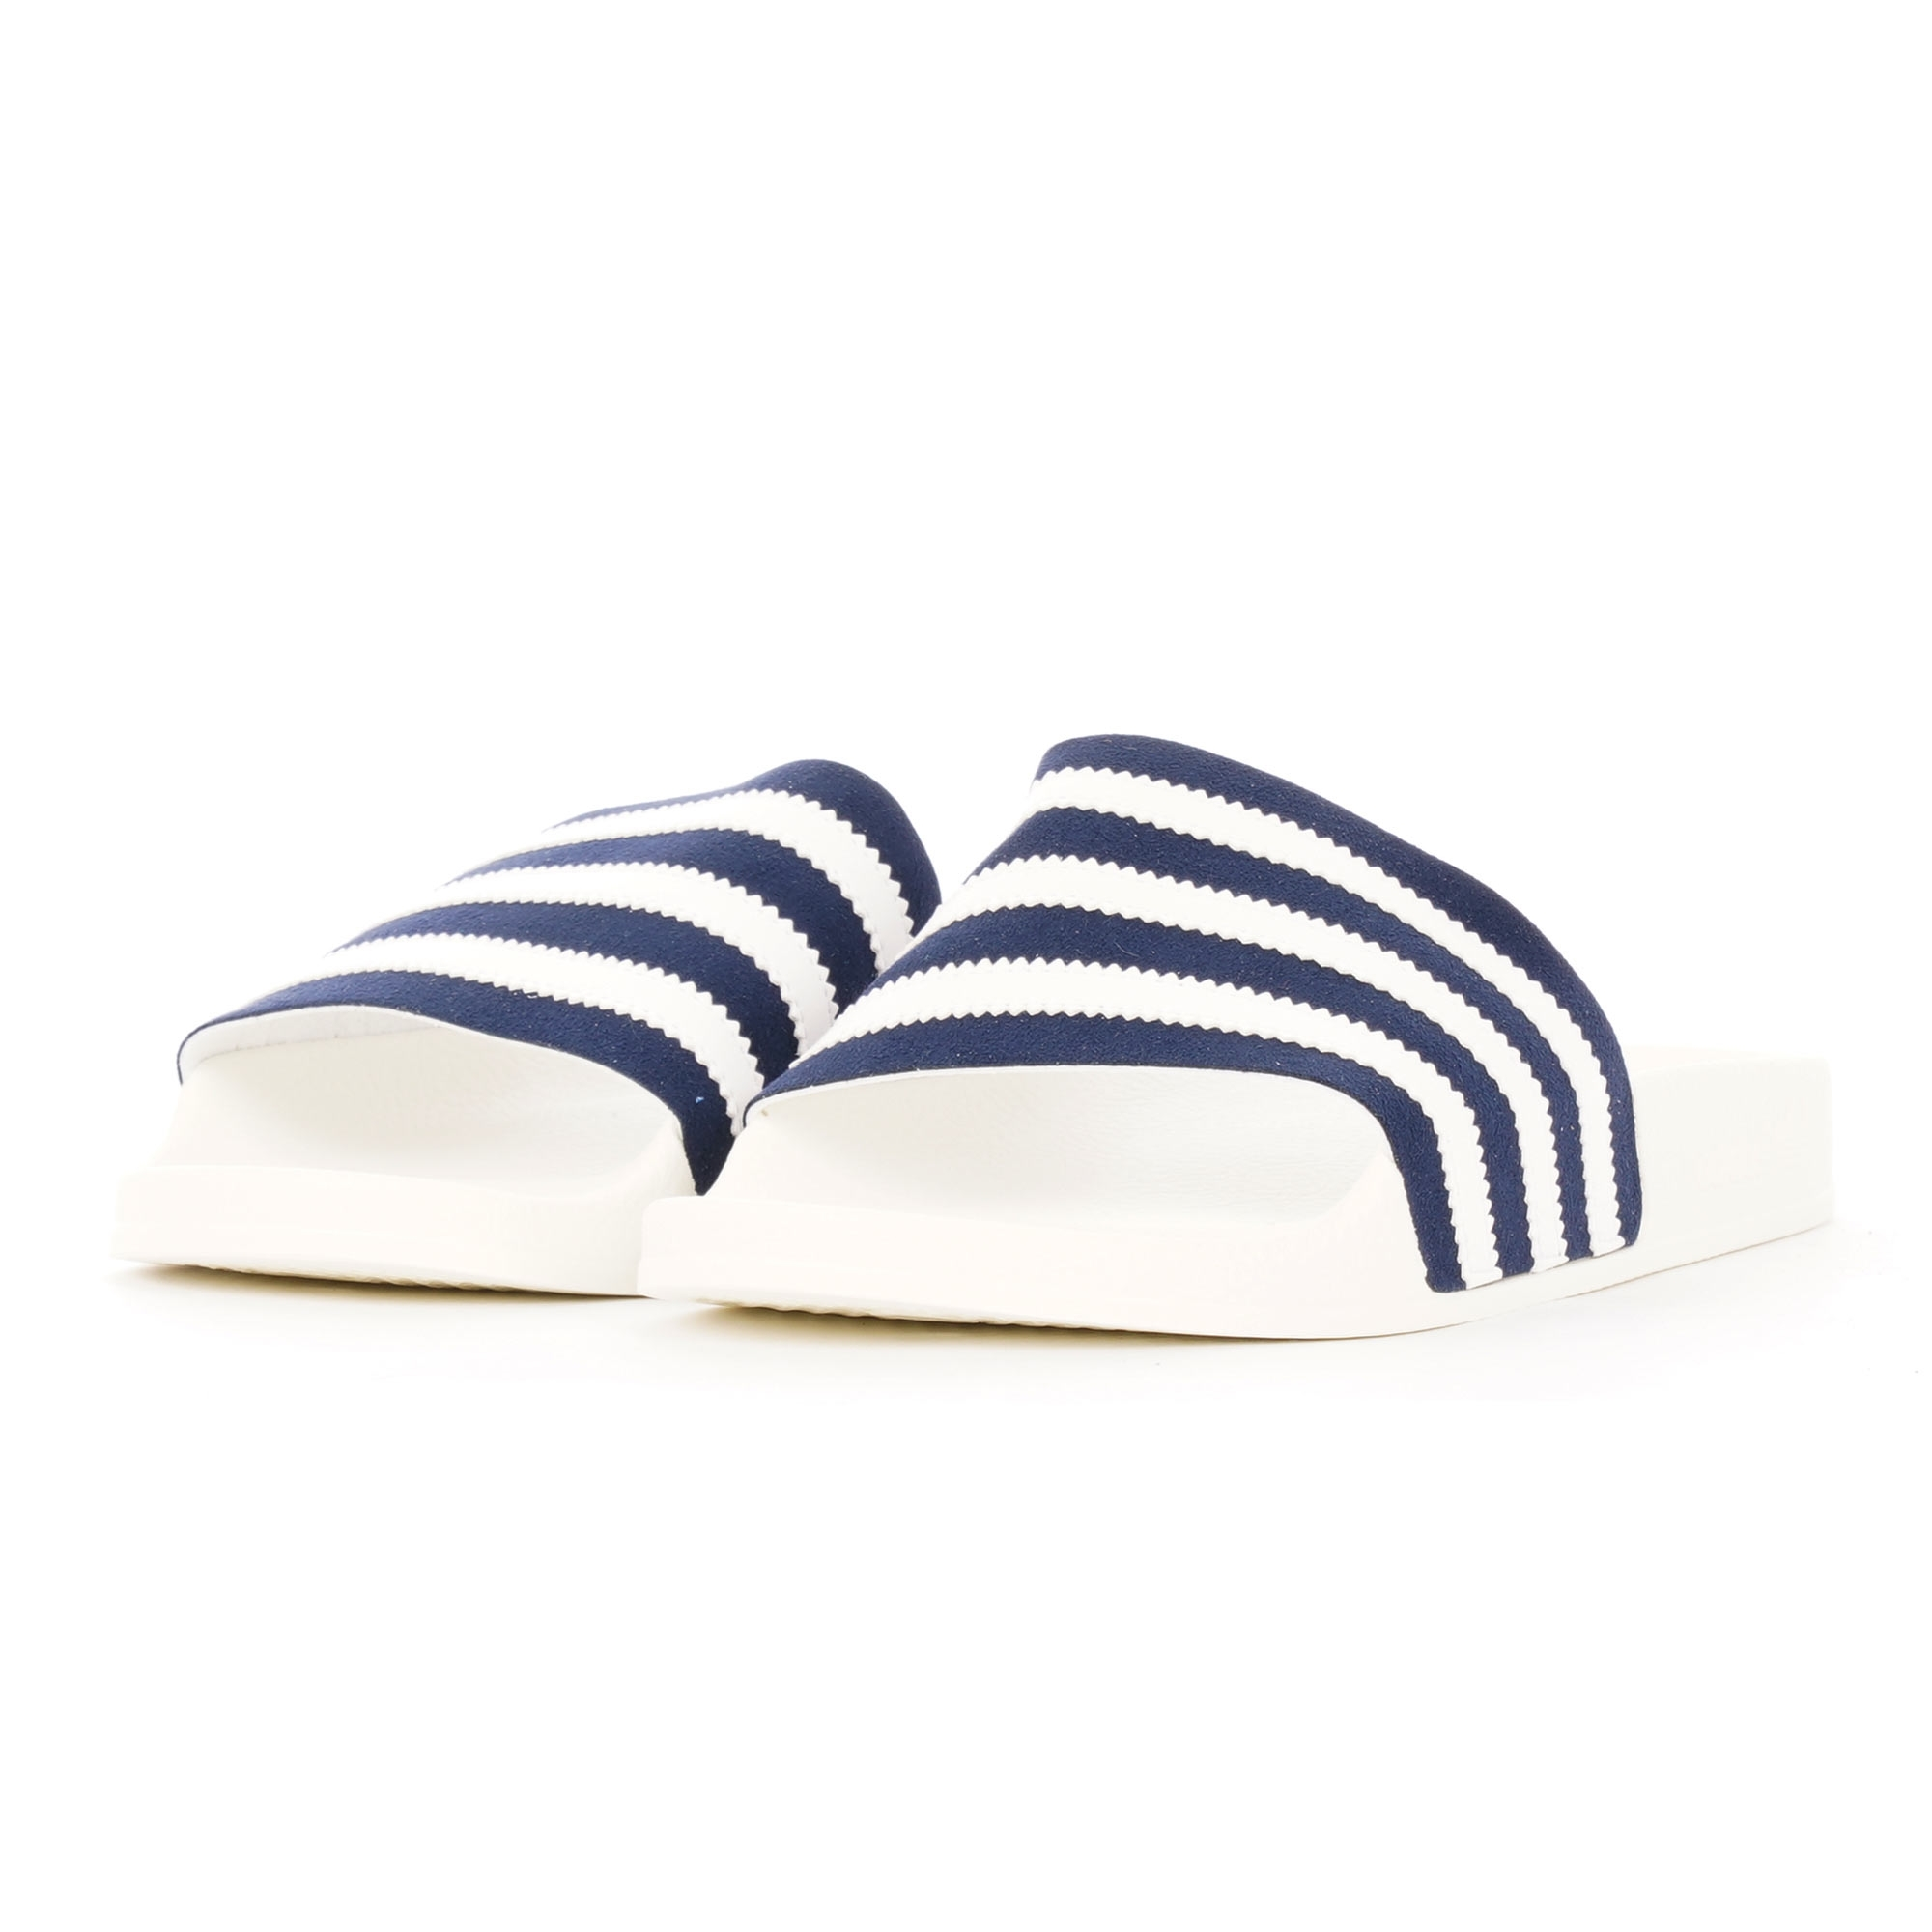 ce0ee5514d3f adidas Originals Adilette Slides (Collegiate Navy) at Dandy Fellow